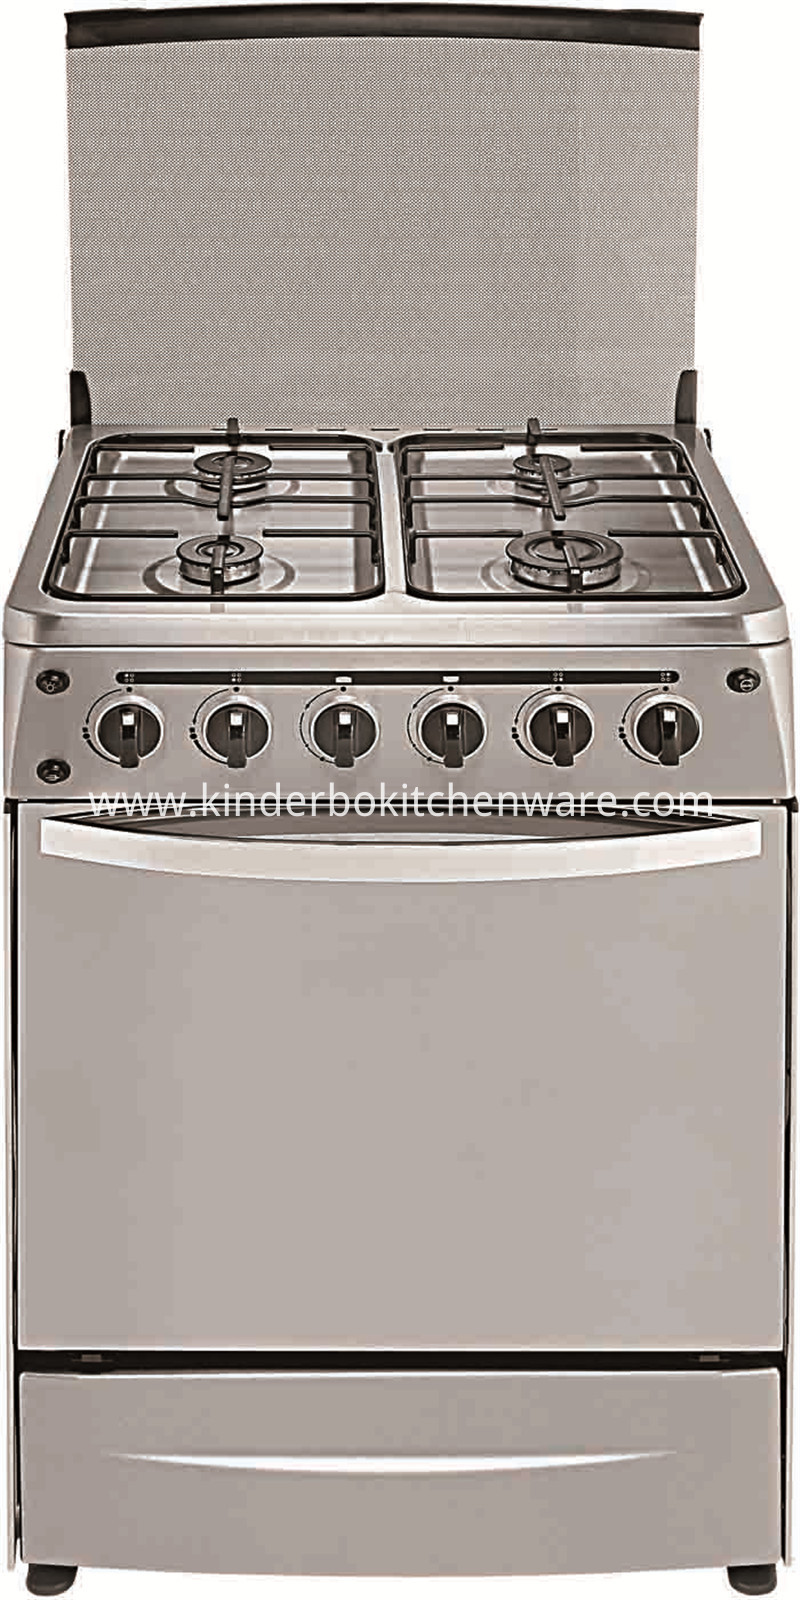 Commercial Gas Range Stainless Steel Gas Cooker Stove with 4 Burner with Oven